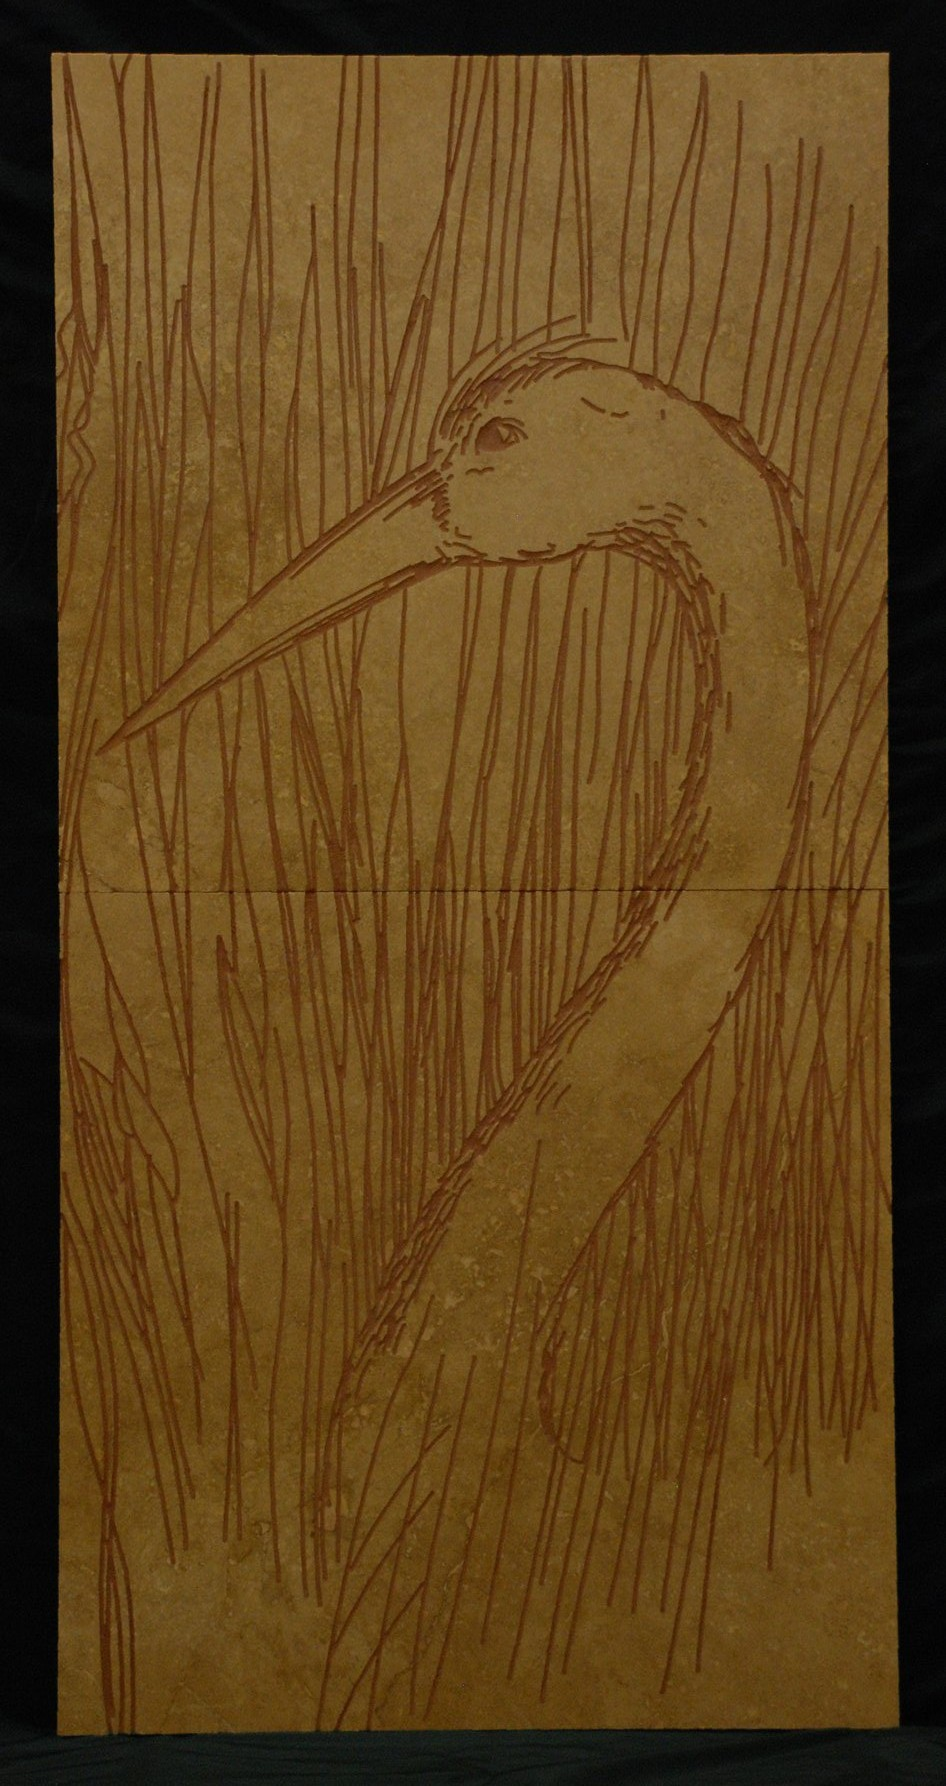 Crane - Engraving on travertine tiles